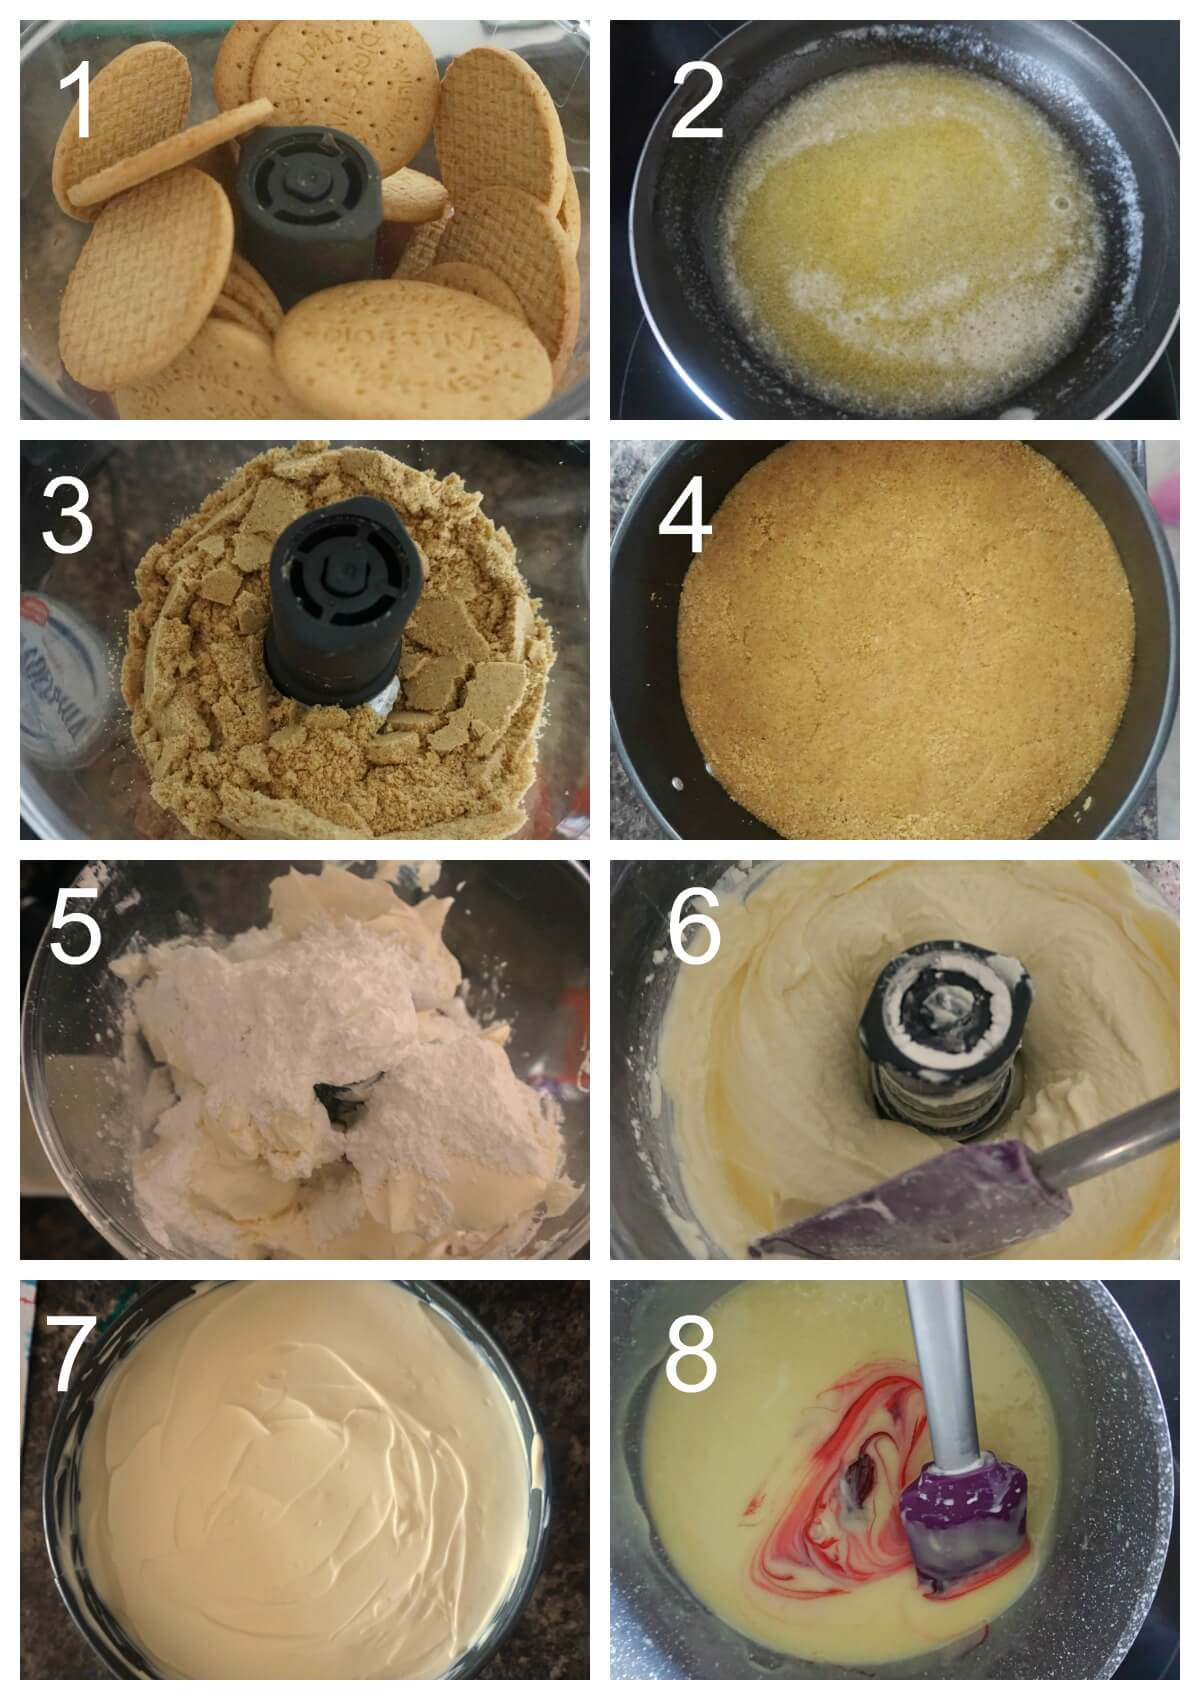 Collage of 8 photos to show how to make a bleeding cheesecake for Halloween